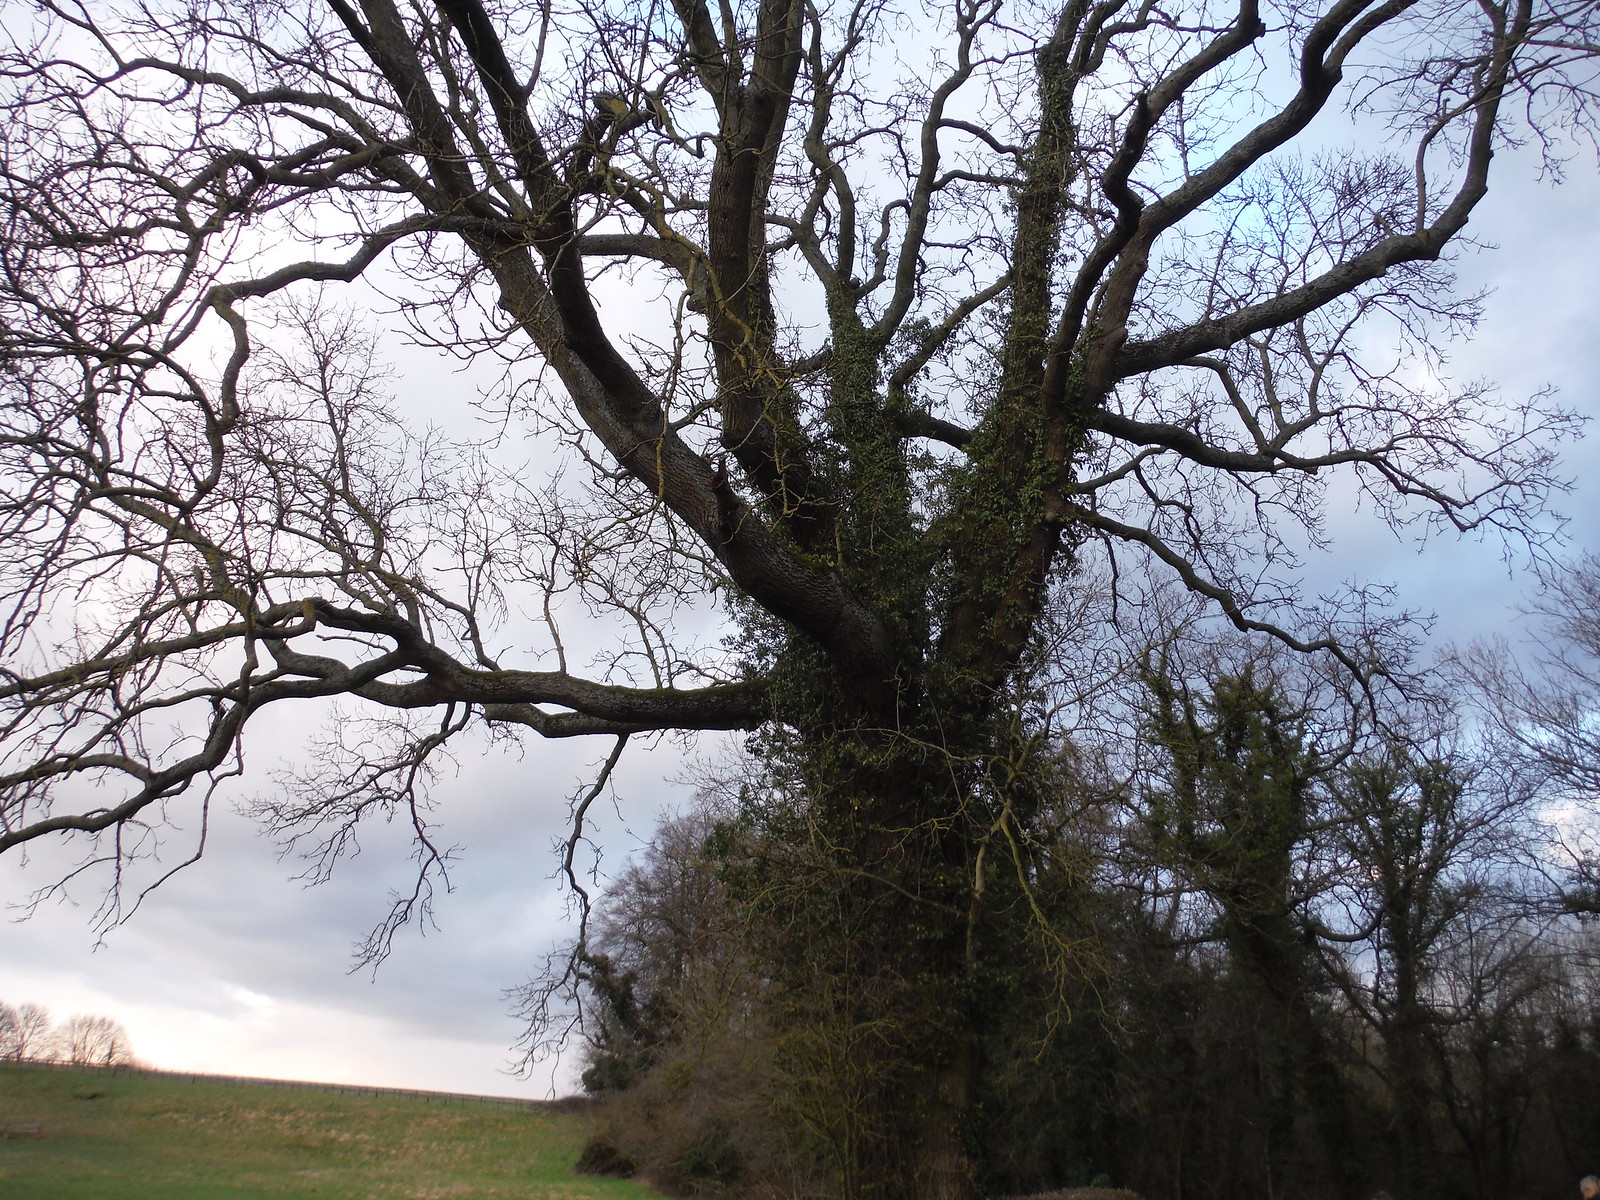 Tree SWC Walk Cheddington to Leighton Buzzard